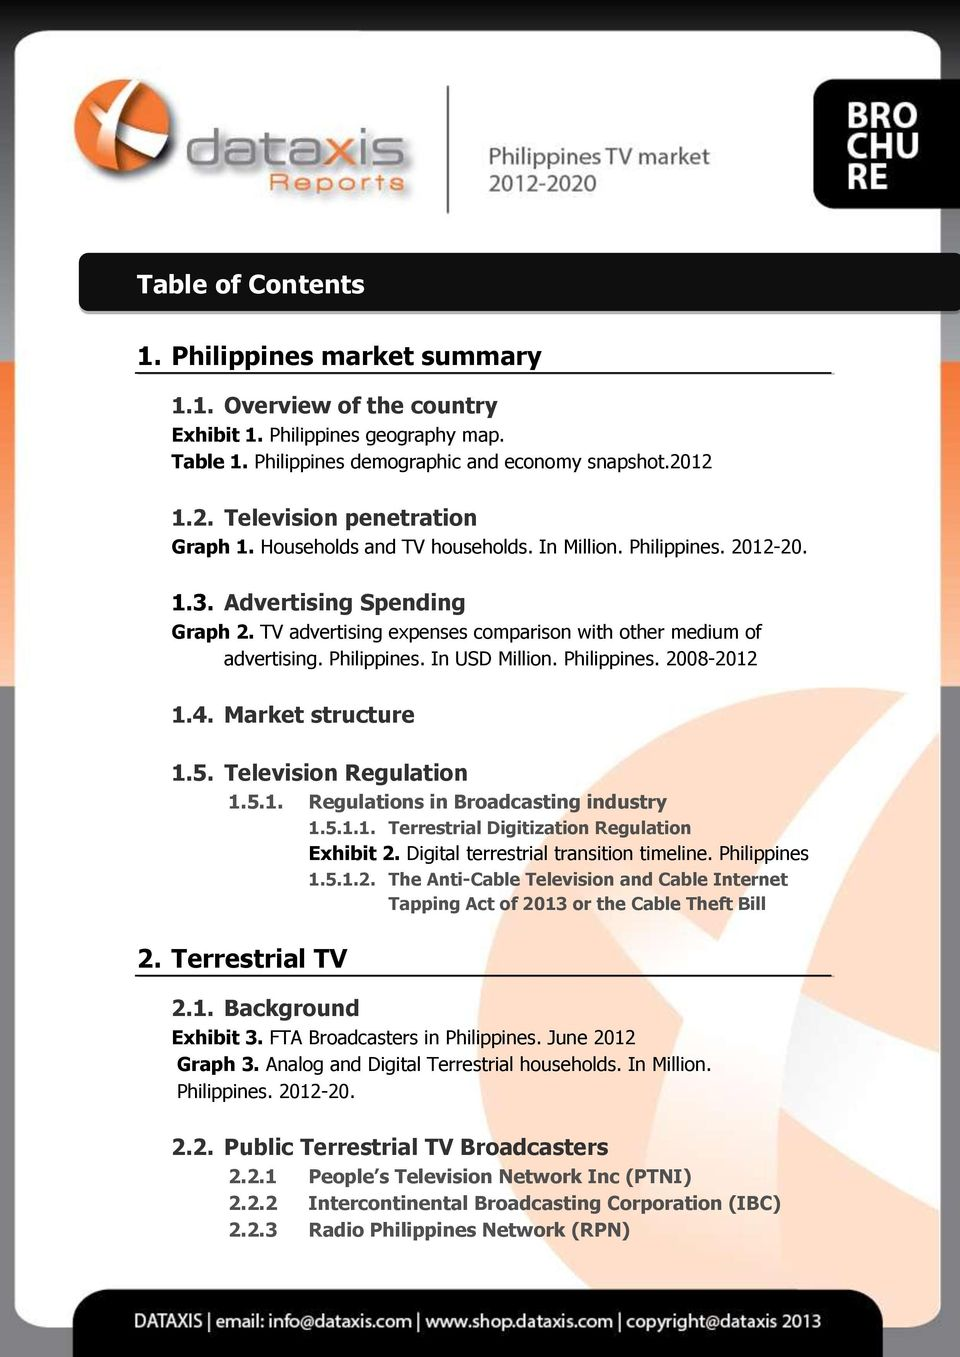 TV advertising expenses comparison with other medium of advertising. Philippines. In USD Million. Philippines. 2008-2012 1.4. Market structure 1.5. Television Regulation 1.5.1. Regulations in Broadcasting industry 1.